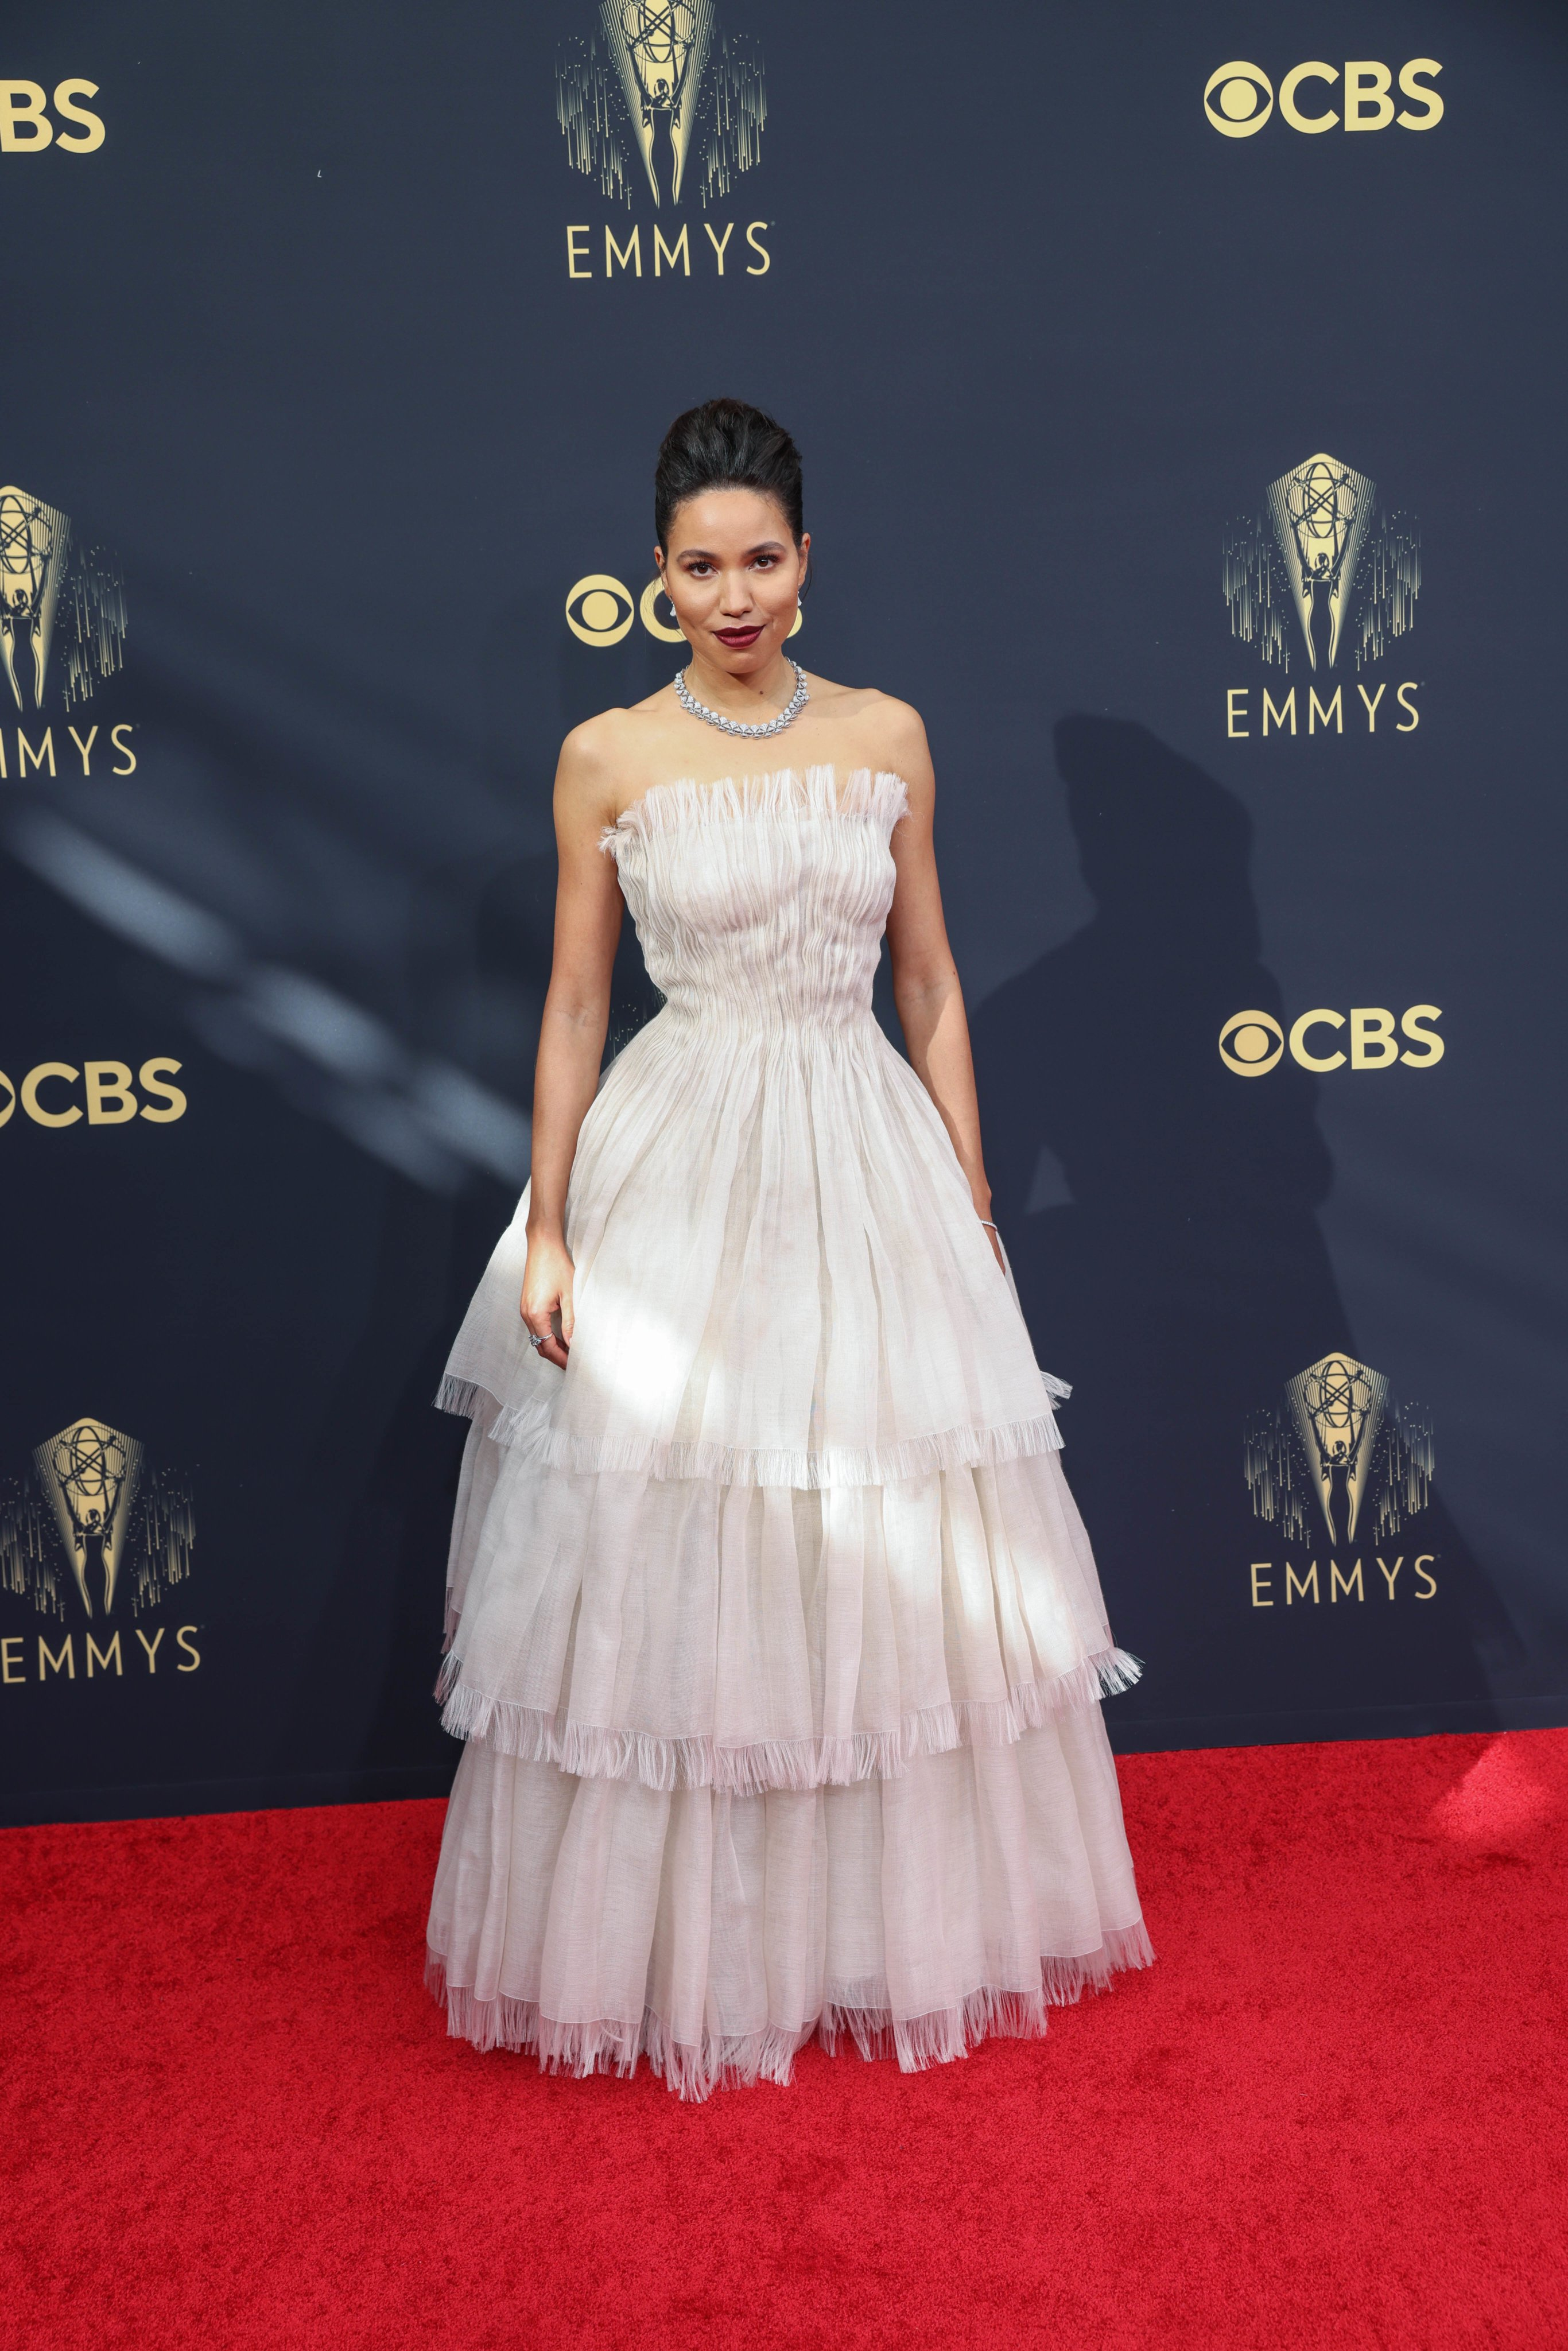 73rd Annual Emmy Awards taking place at LA Live